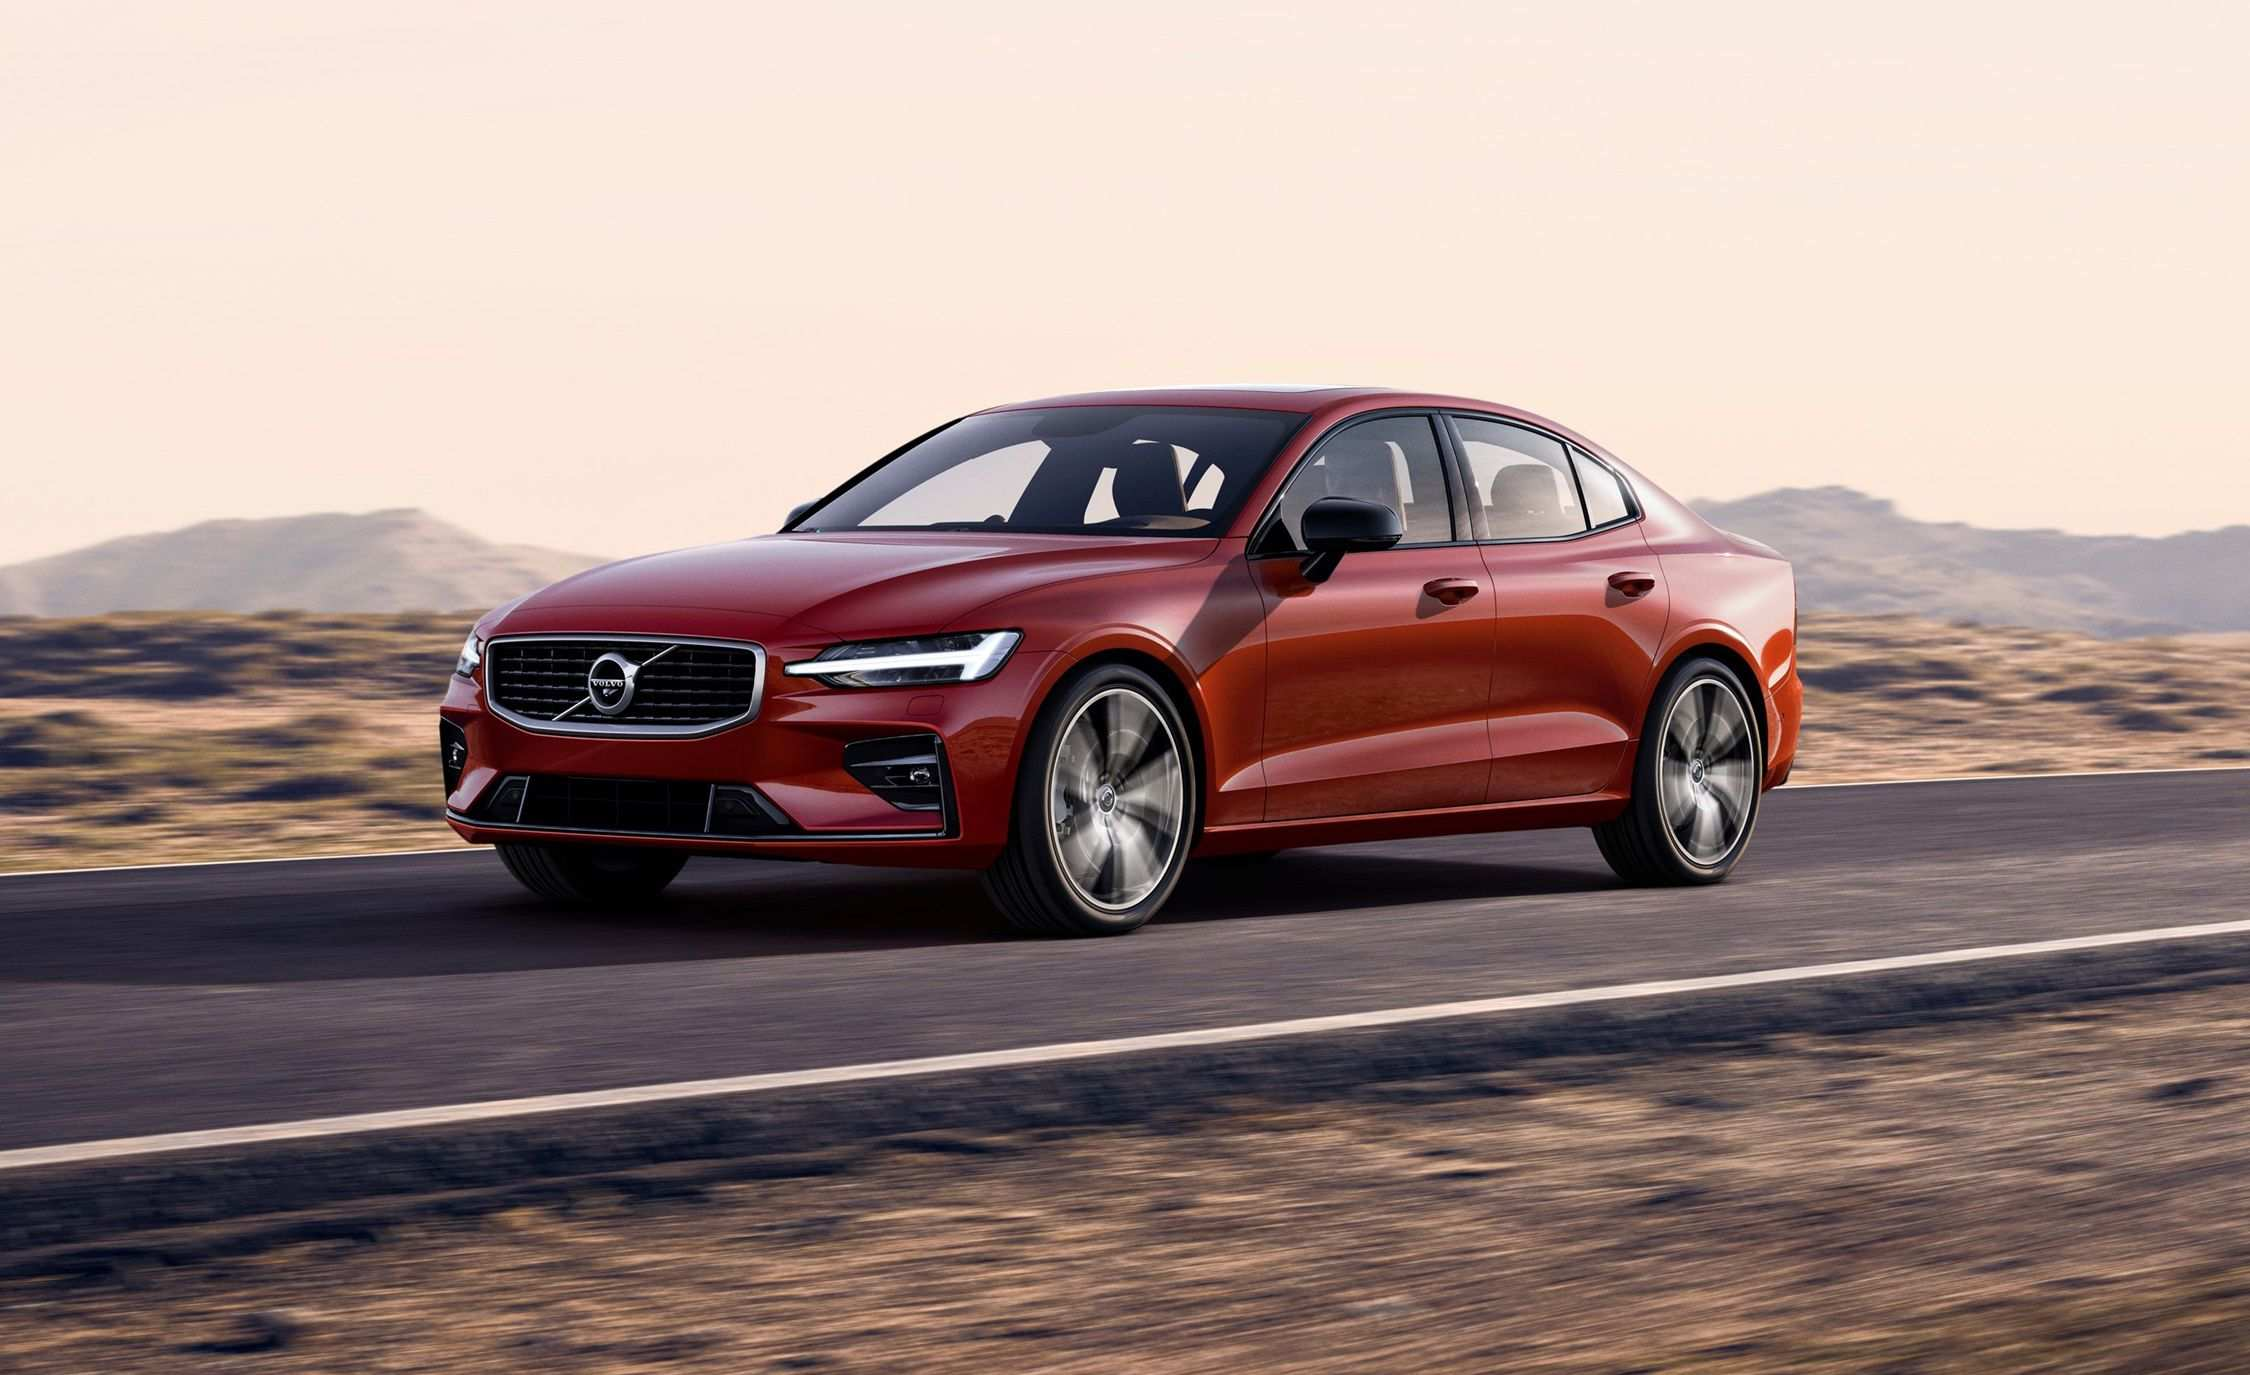 91 Great 2020 Volvo S60 Length Images for 2020 Volvo S60 Length